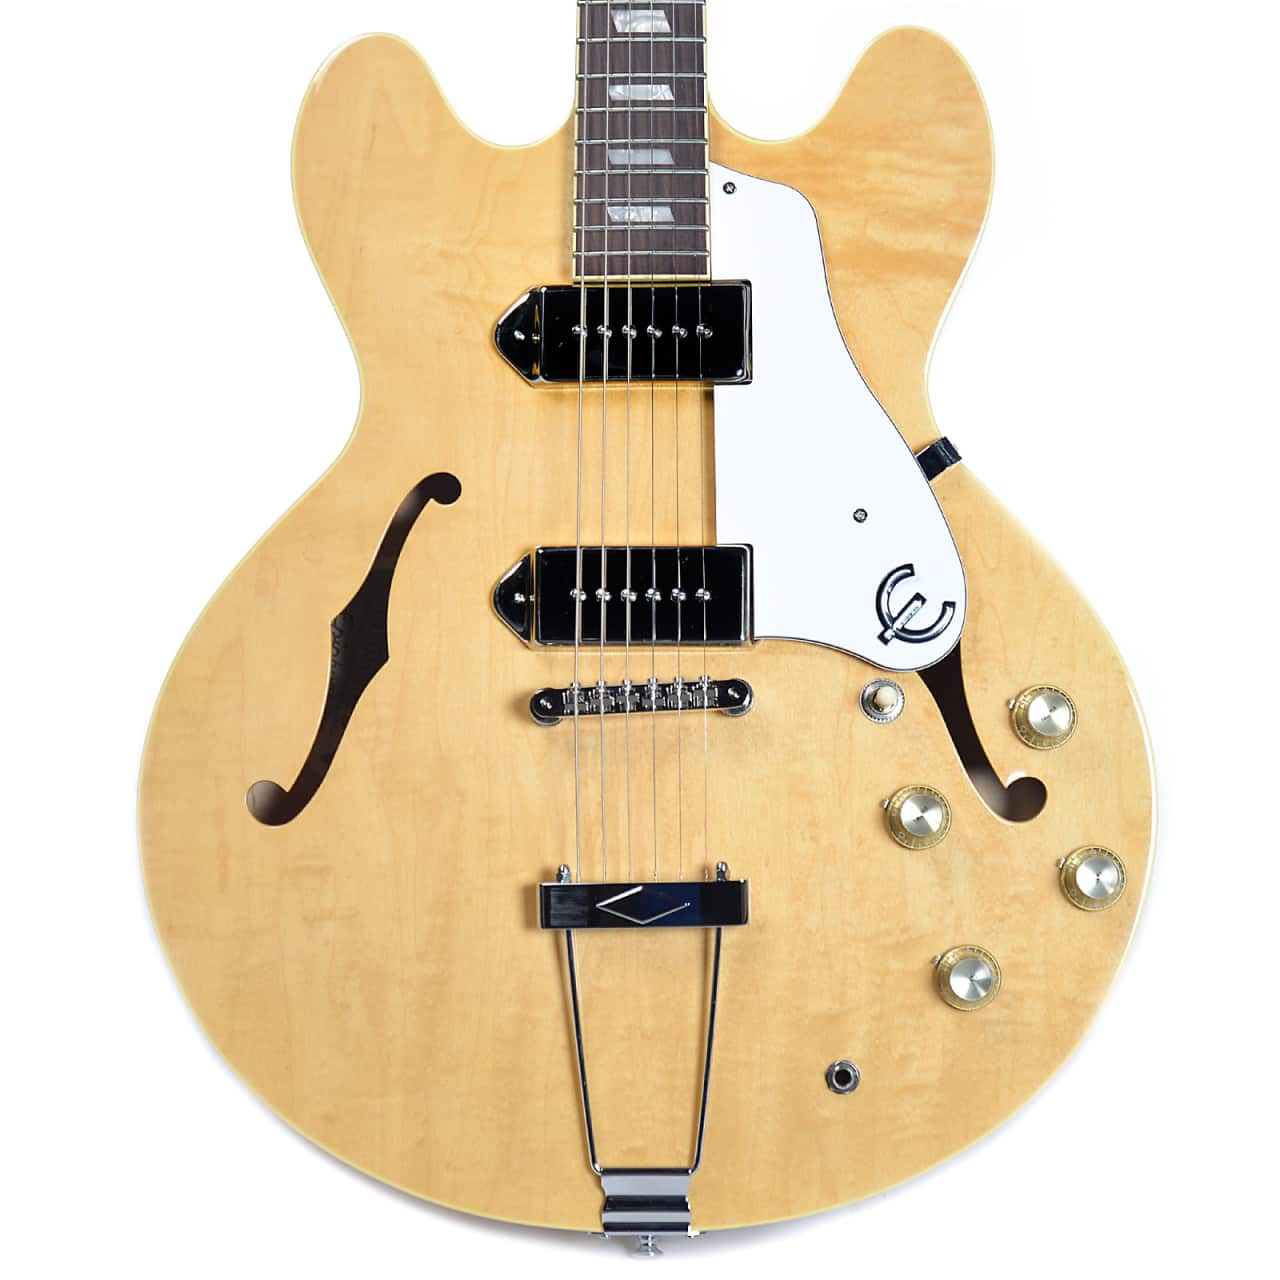 dating epiphone elitist guitars What do you think the best semi-hollow/hollowbody guitar is under $1000 imho, i think it's probably going to be an epiphone es-335, epiphone.